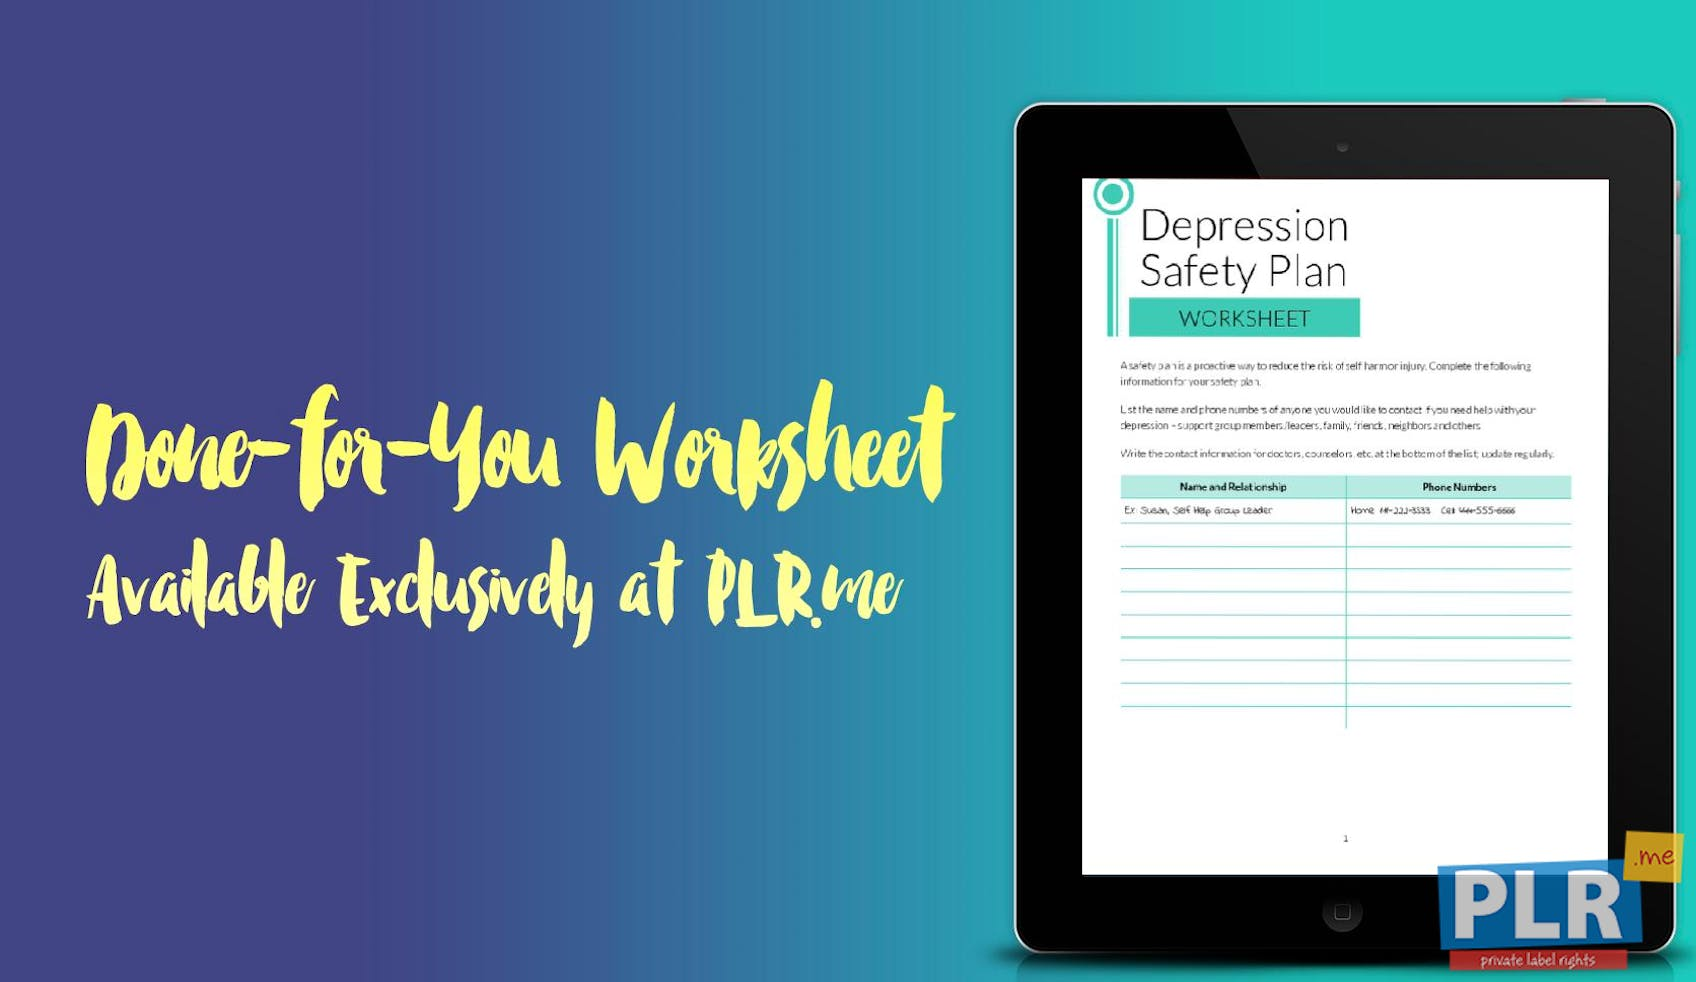 PLR Worksheets - Depression Safety Plan Worksheet - PLR.me